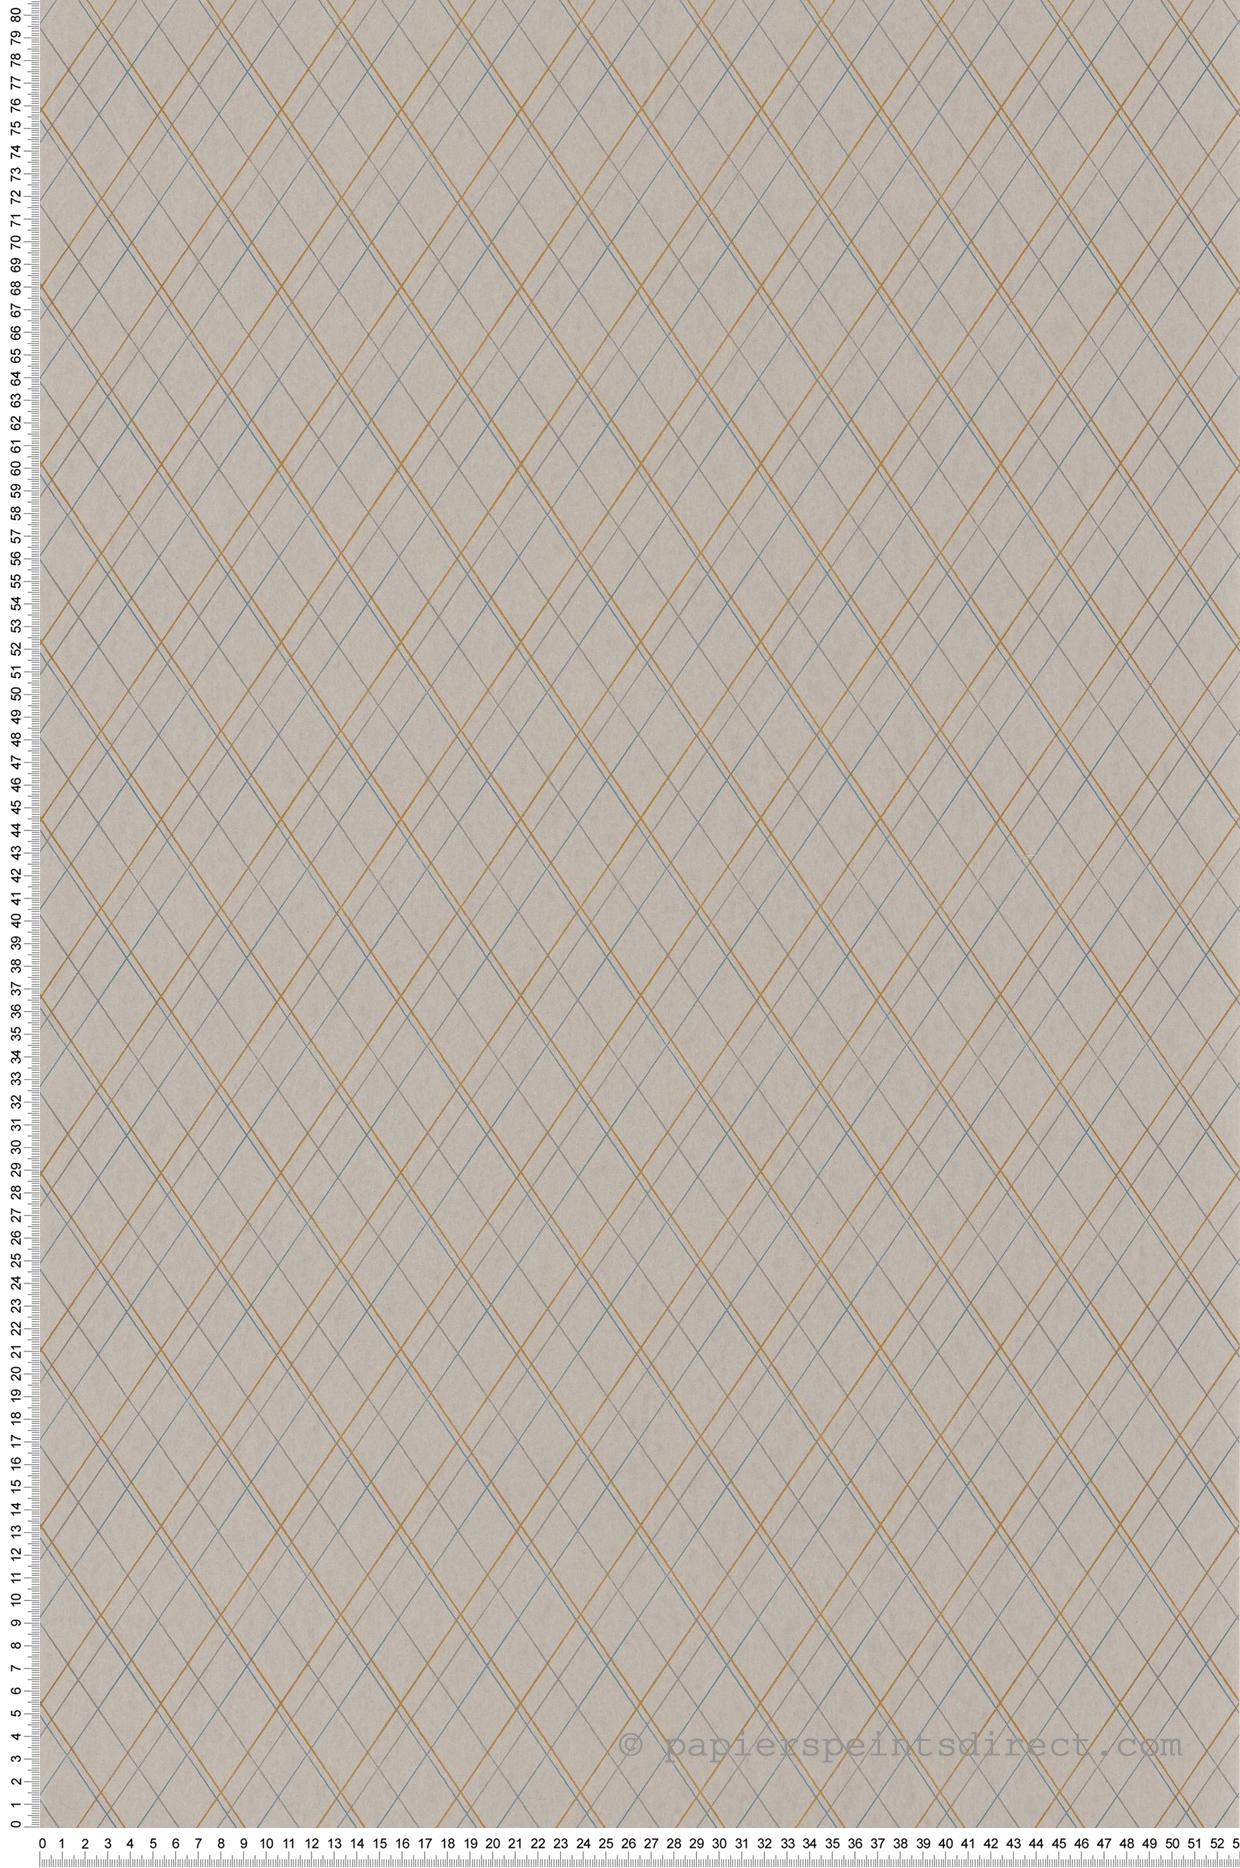 Papier peint carreaux Burlington Oliver gris/orange/bleu - Oxford de Casadéco | Réf. OXFD84131510